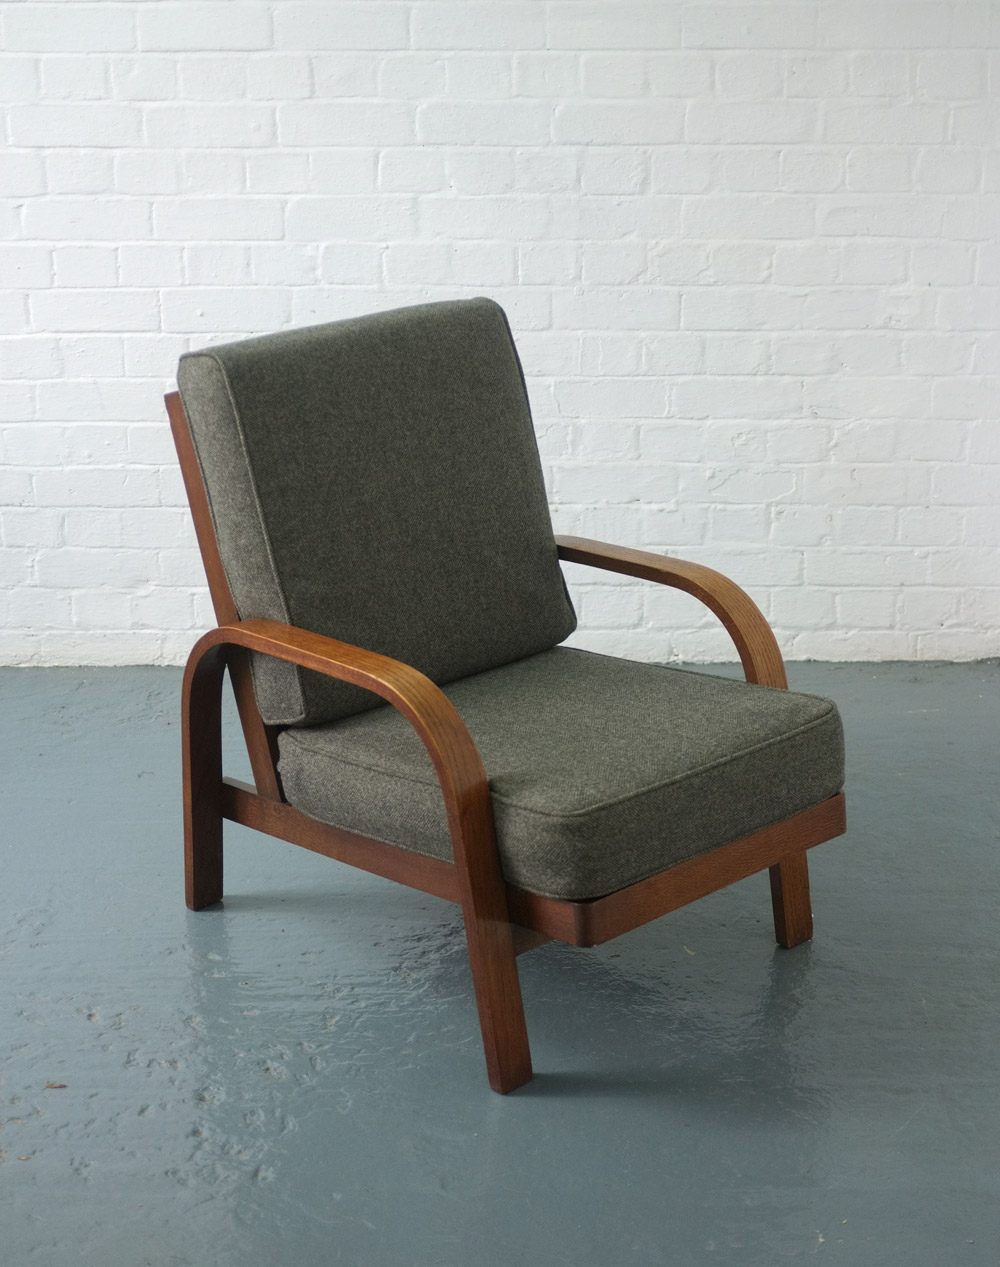 Lamda chair by Robert Hening and Hein Heckroth